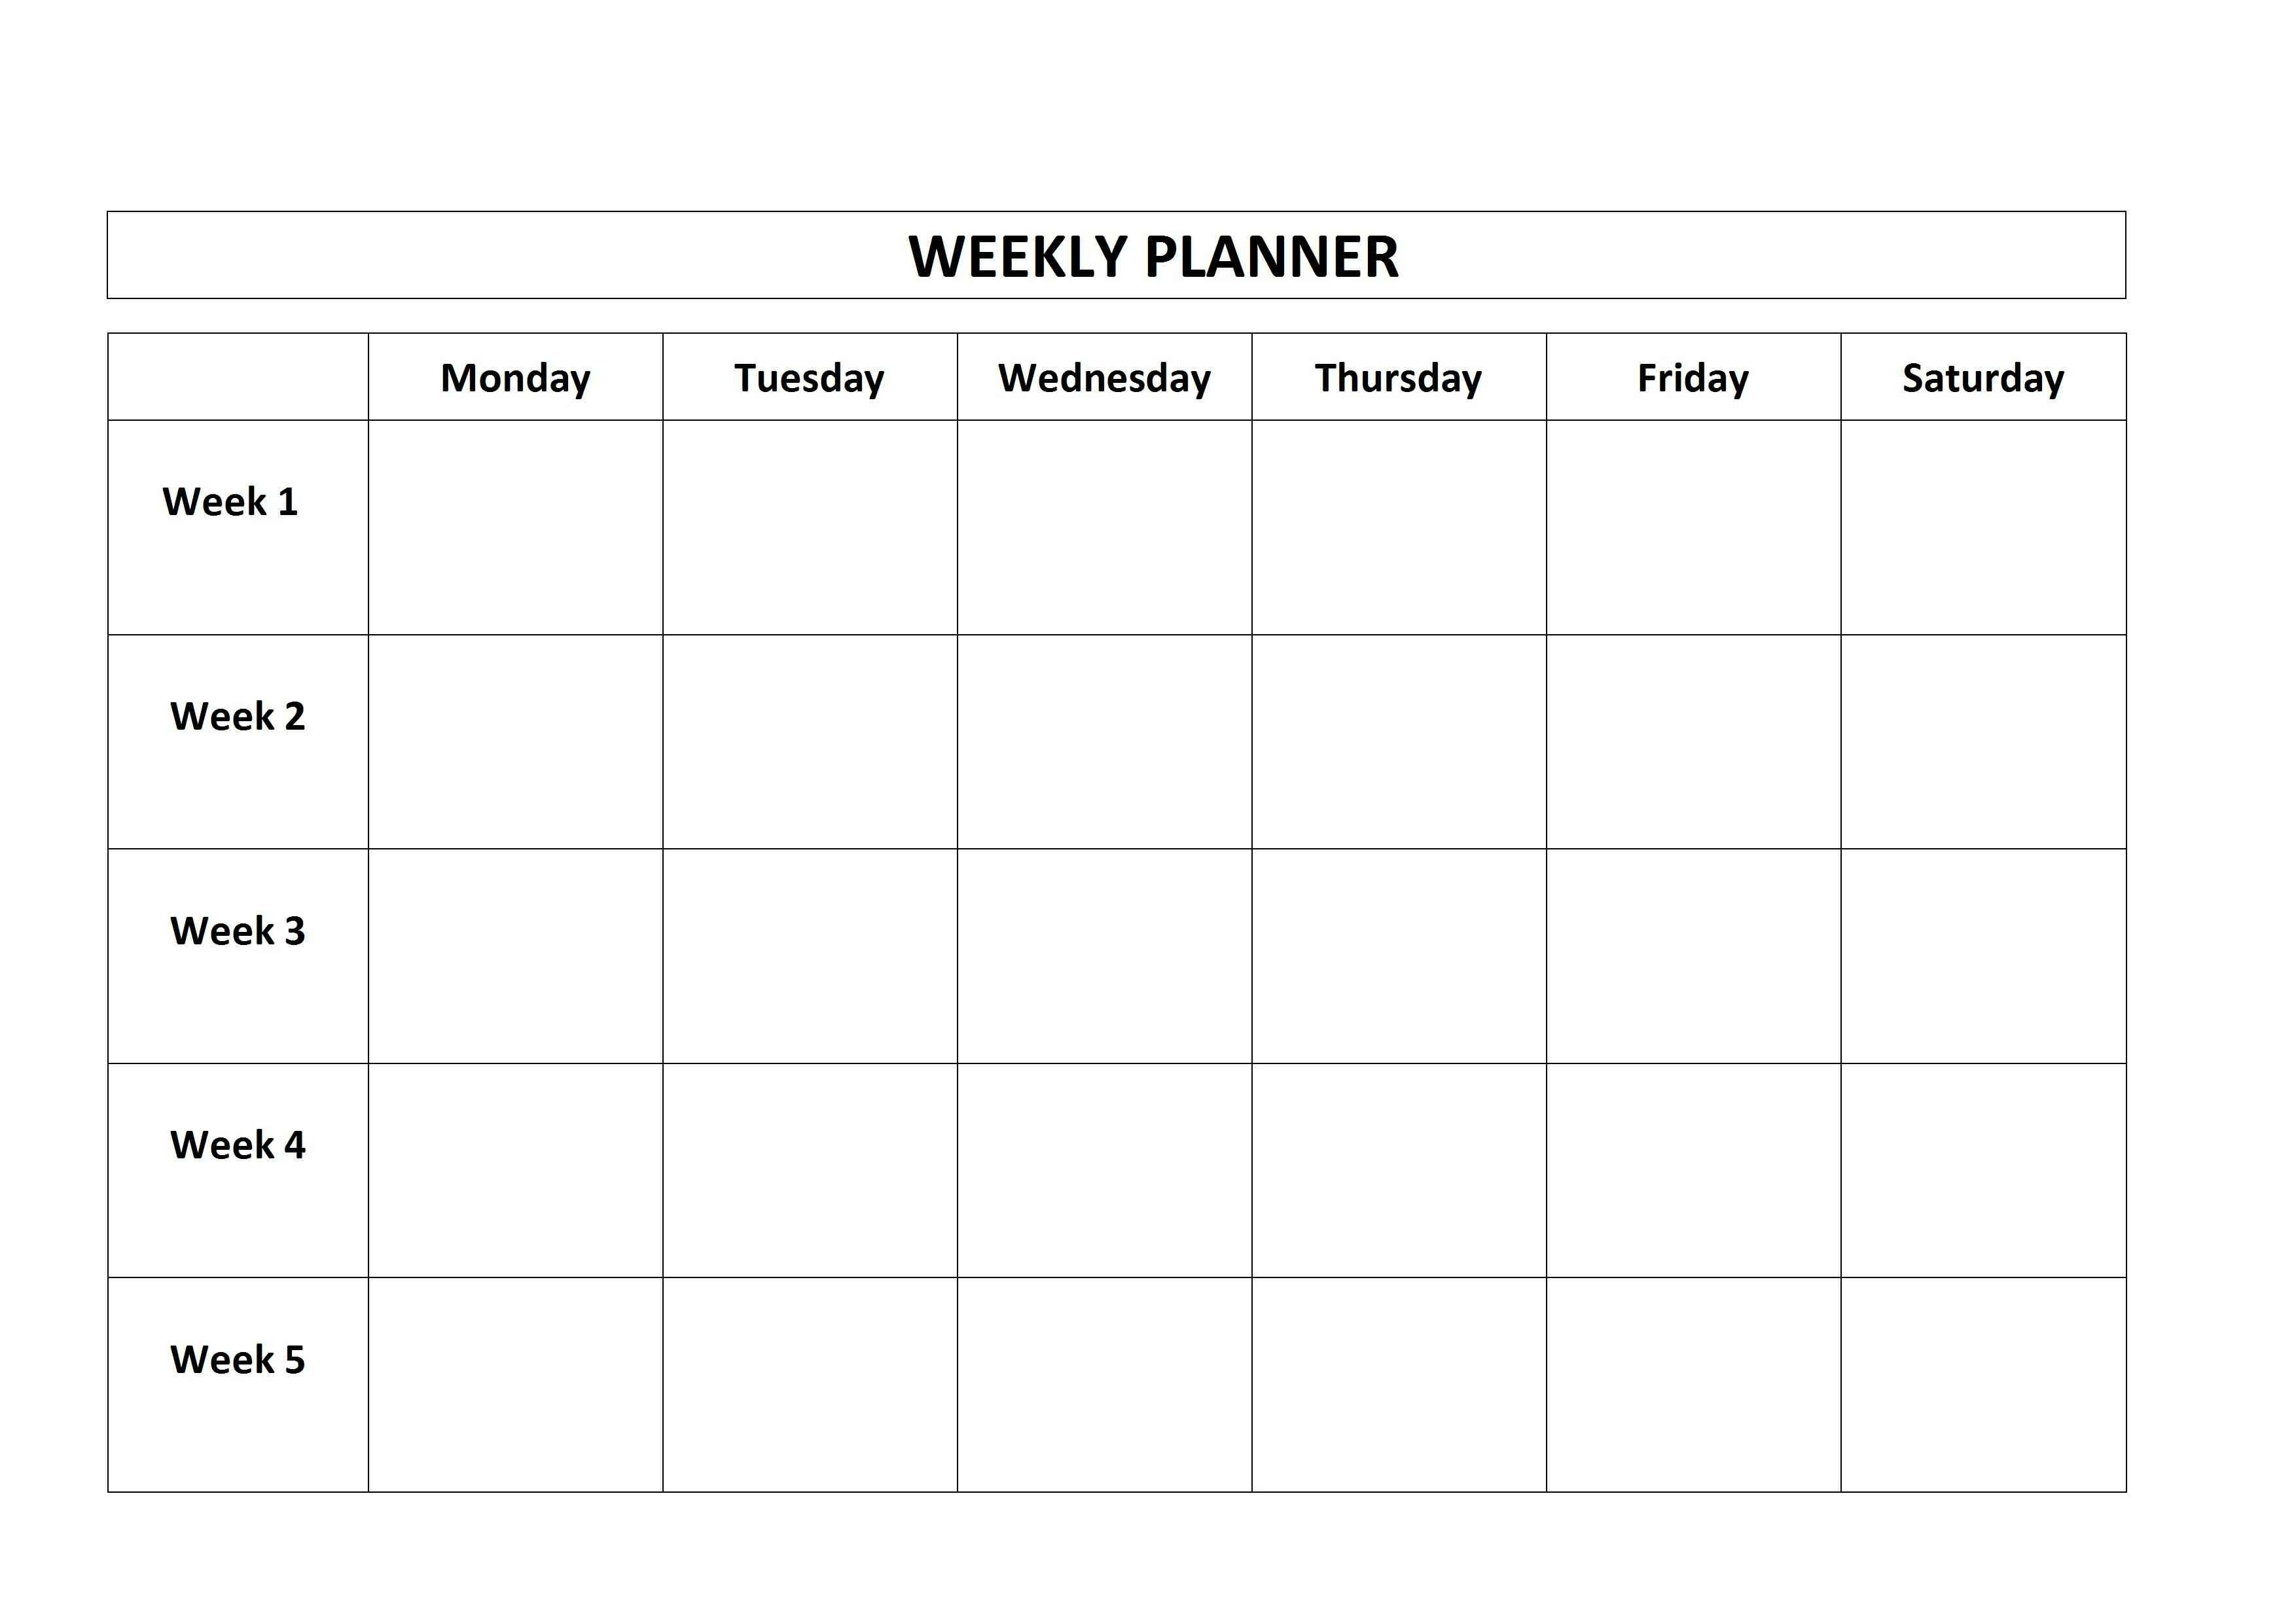 021 Two Week Calendar Template Monday To Friday Calendars throughout Calendar Template Monday Through Friday